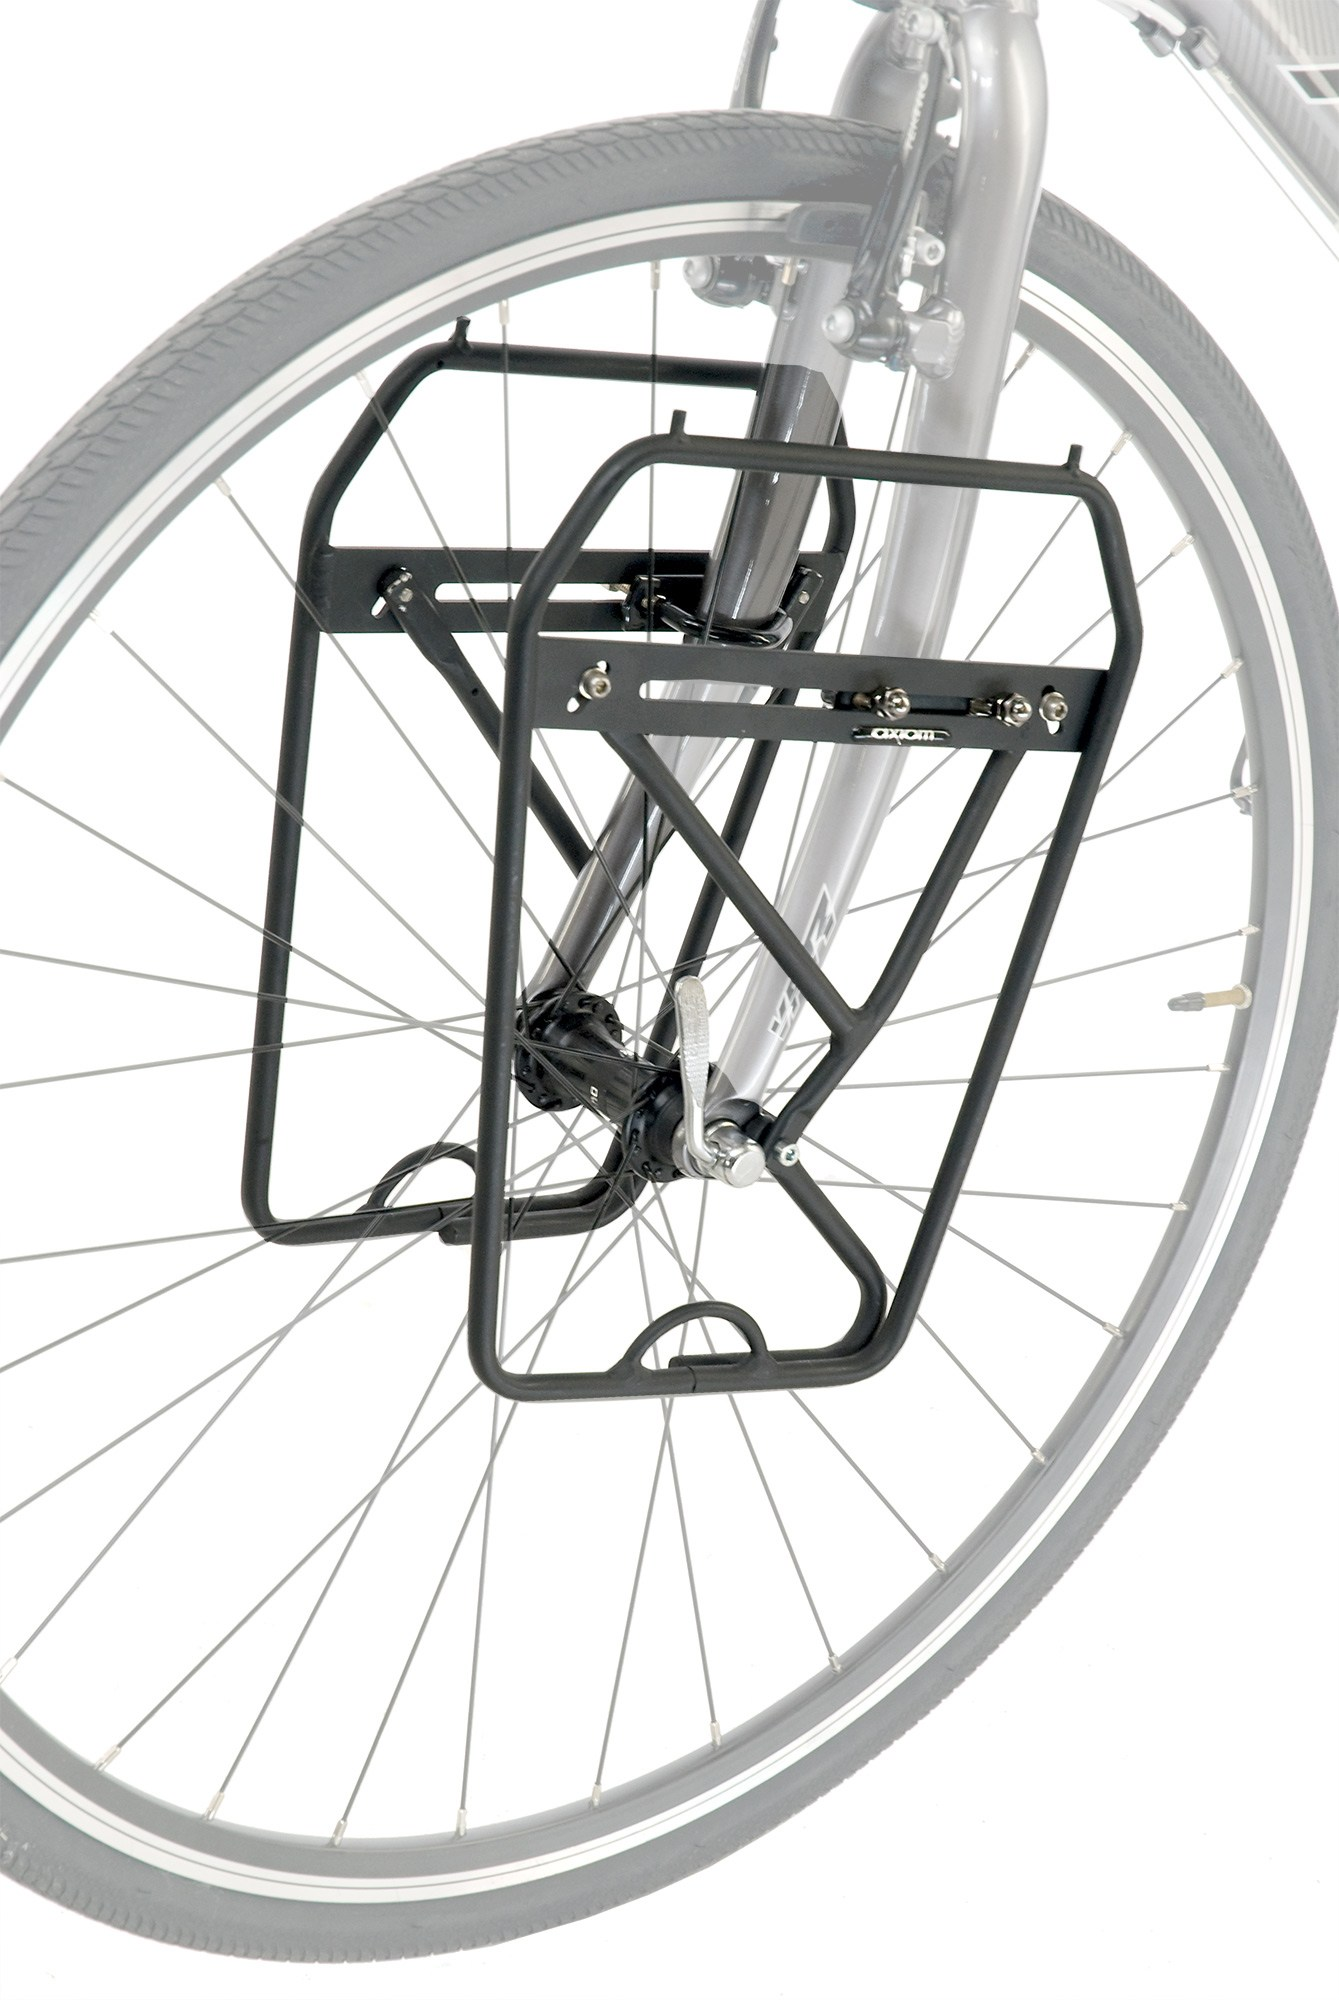 Axiom Cycling Gear Journey DLX Lowrider Front Bike Rack